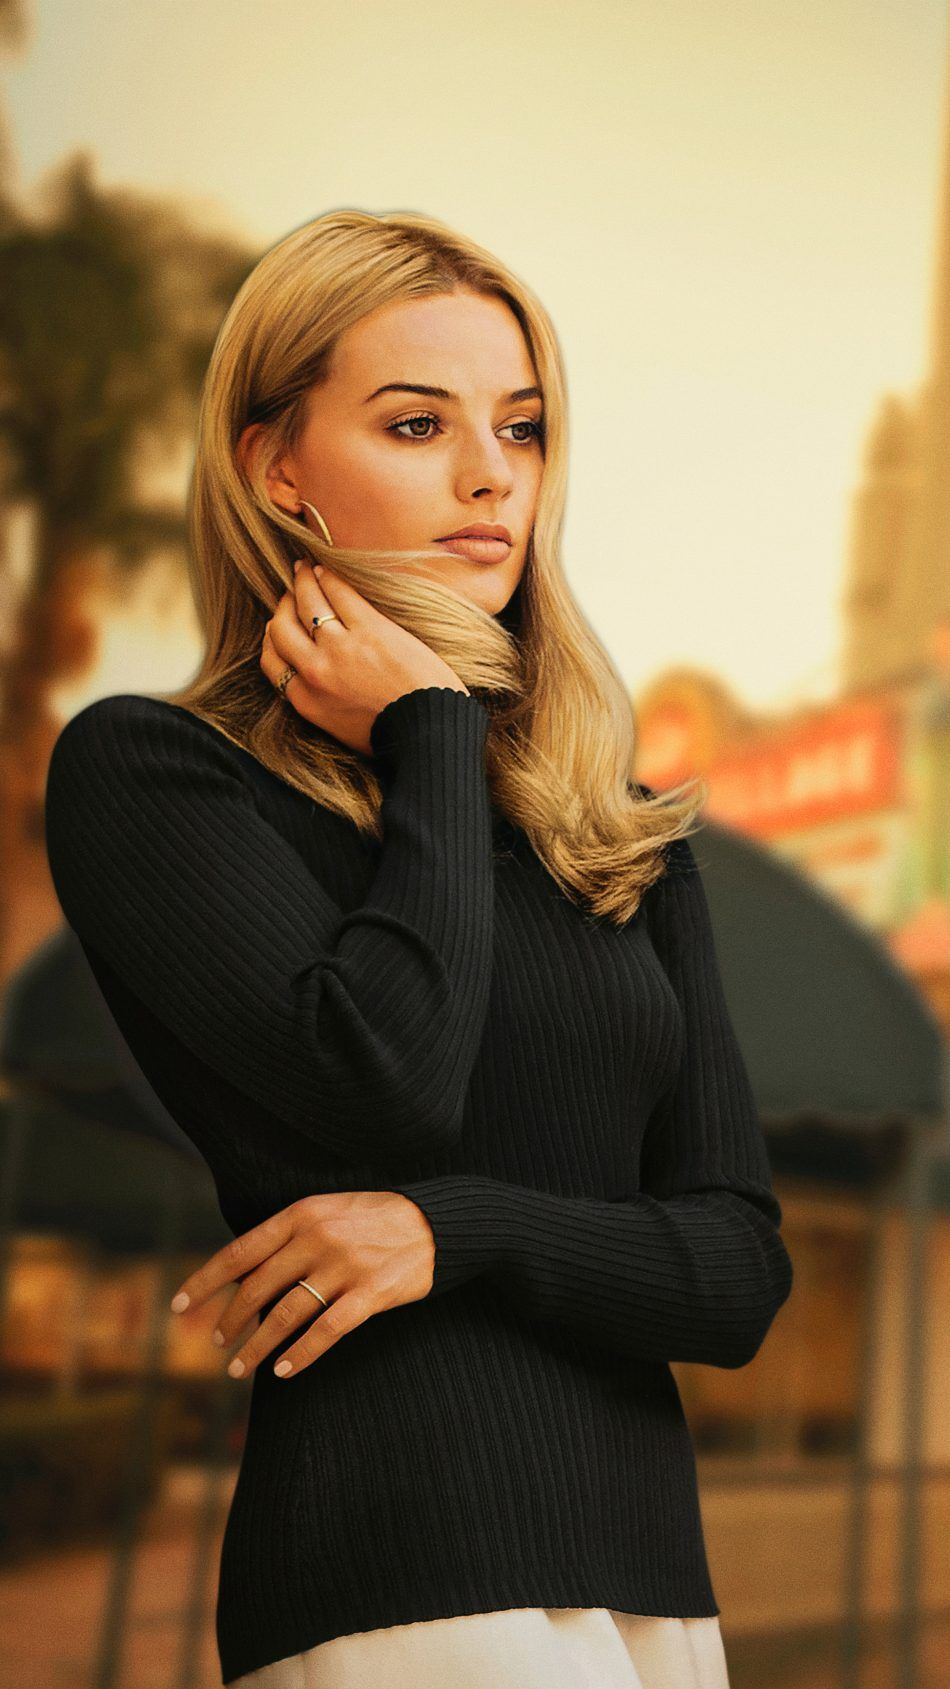 Margot Robbie Once Upon A Time In Hollywood 2019 4k Ultra Hd Mobile Wallpaper Actress Margot Robbie Margaret Robbie Margot Robbie